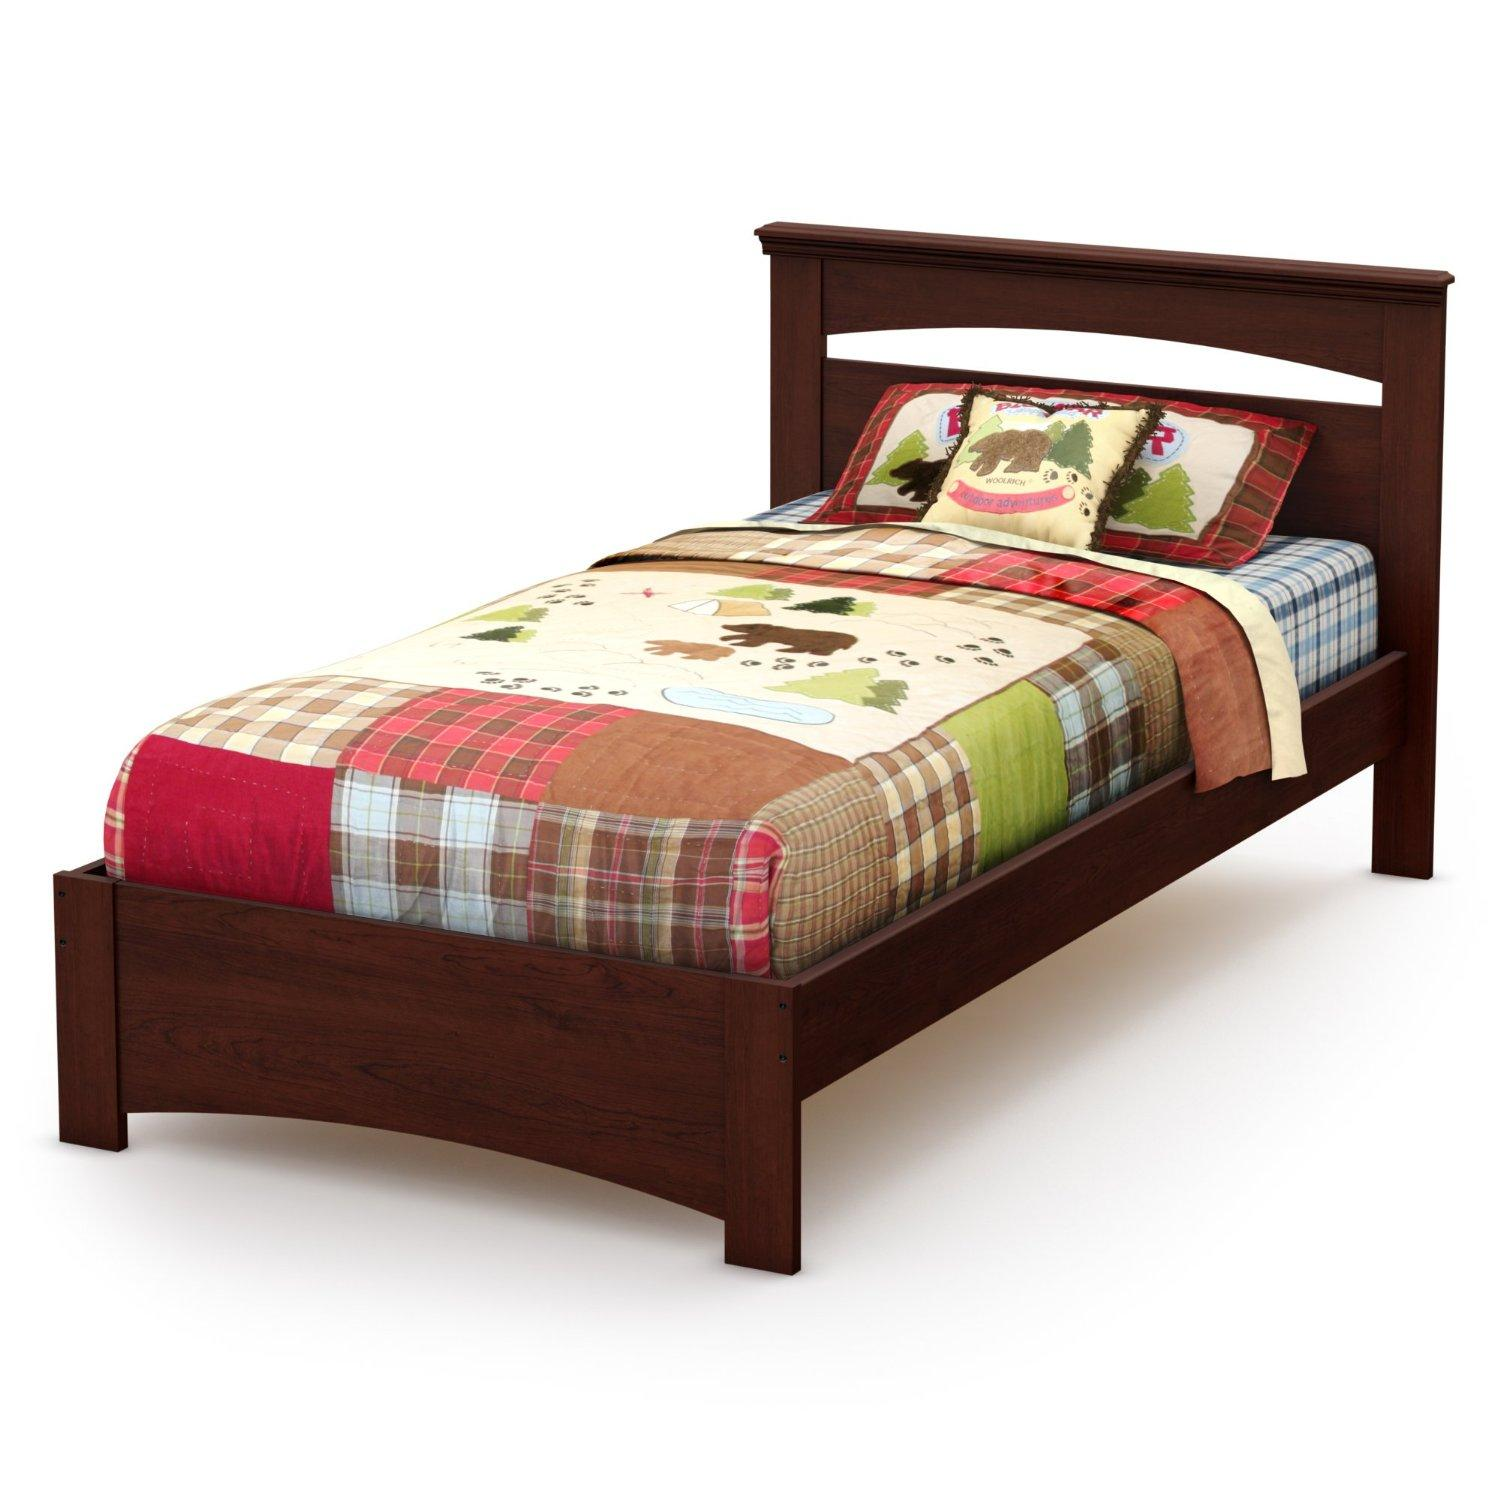 South shore libra twin bed set by oj commerce 3859189 for Twin mattress and frame